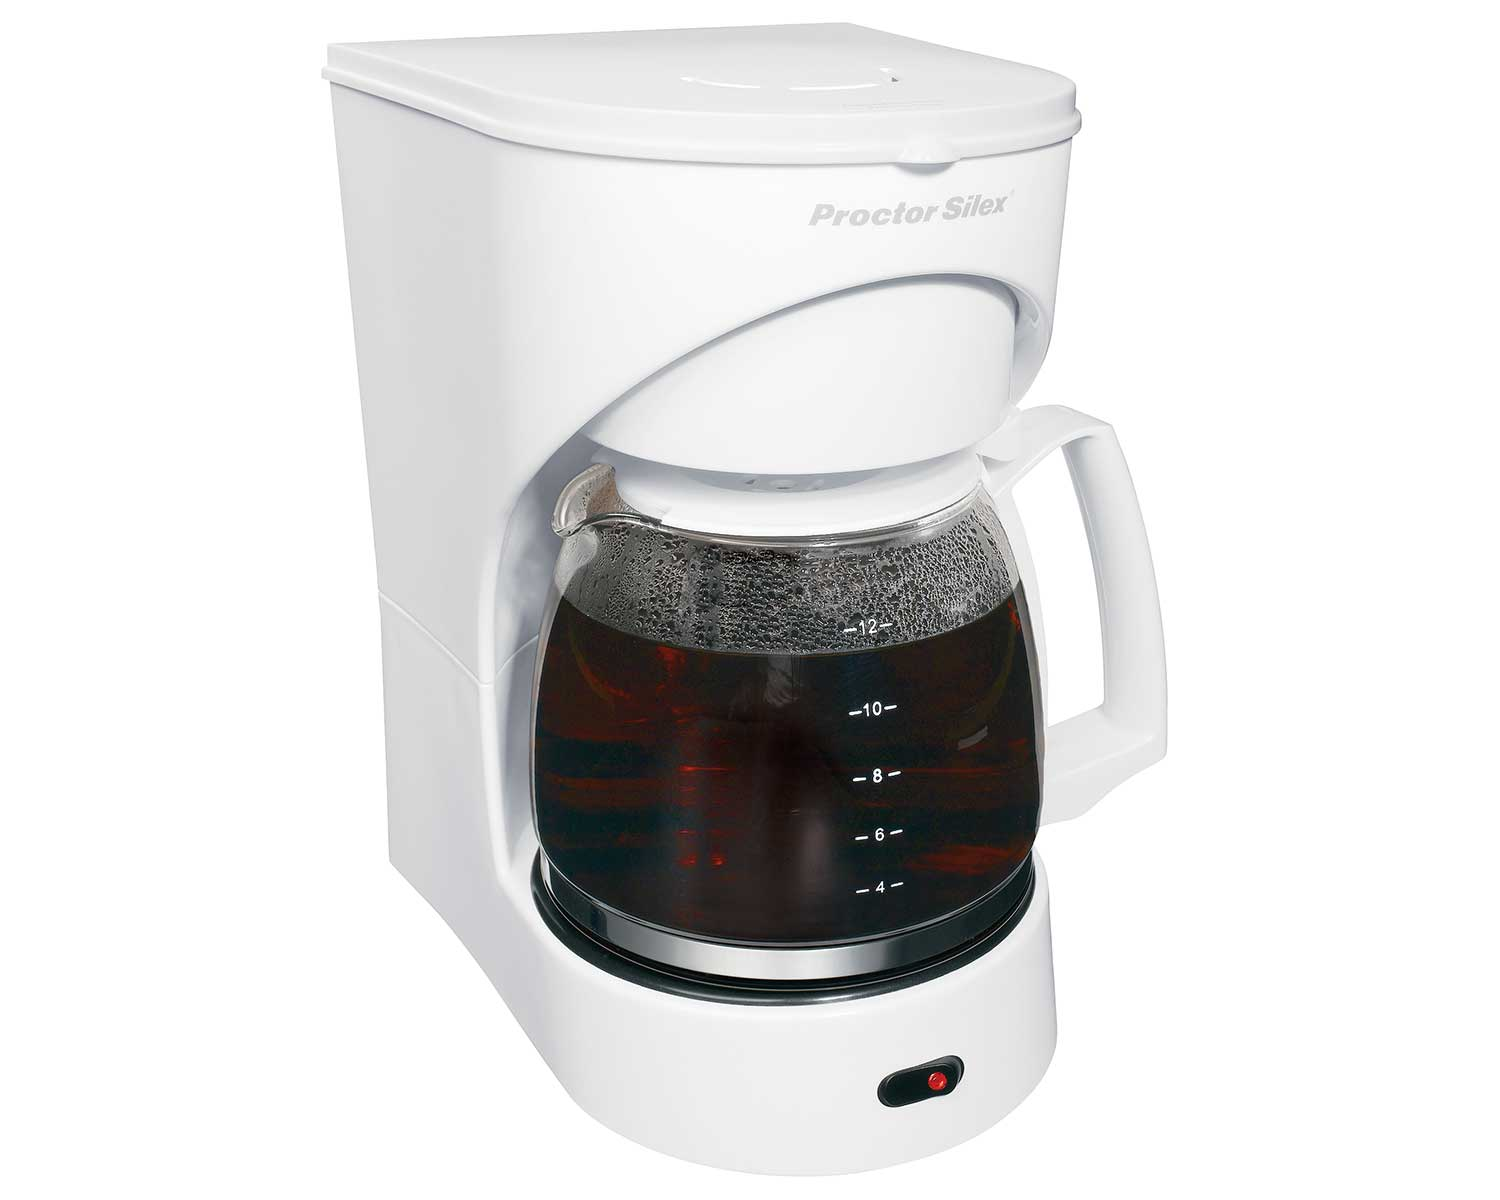 12 Cup Drip Coffee Maker (white)-43501Y Small Size